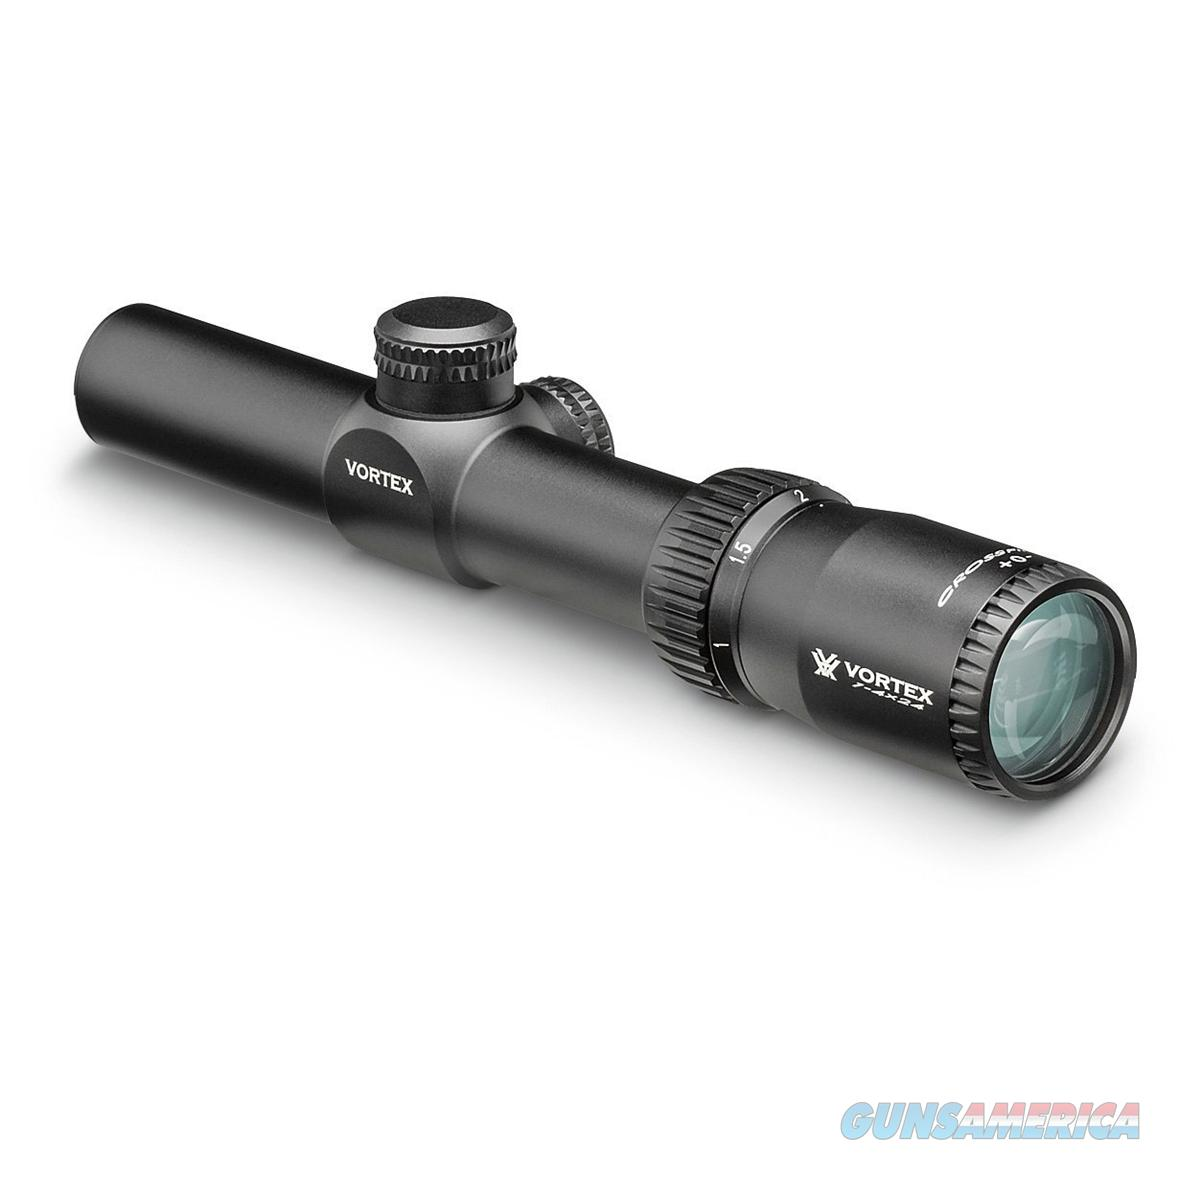 Vortex Crossfire II Riflescope 1-4x24 V-Plex (MOA) CF2-31035  Non-Guns > Scopes/Mounts/Rings & Optics > Rifle Scopes > Variable Focal Length